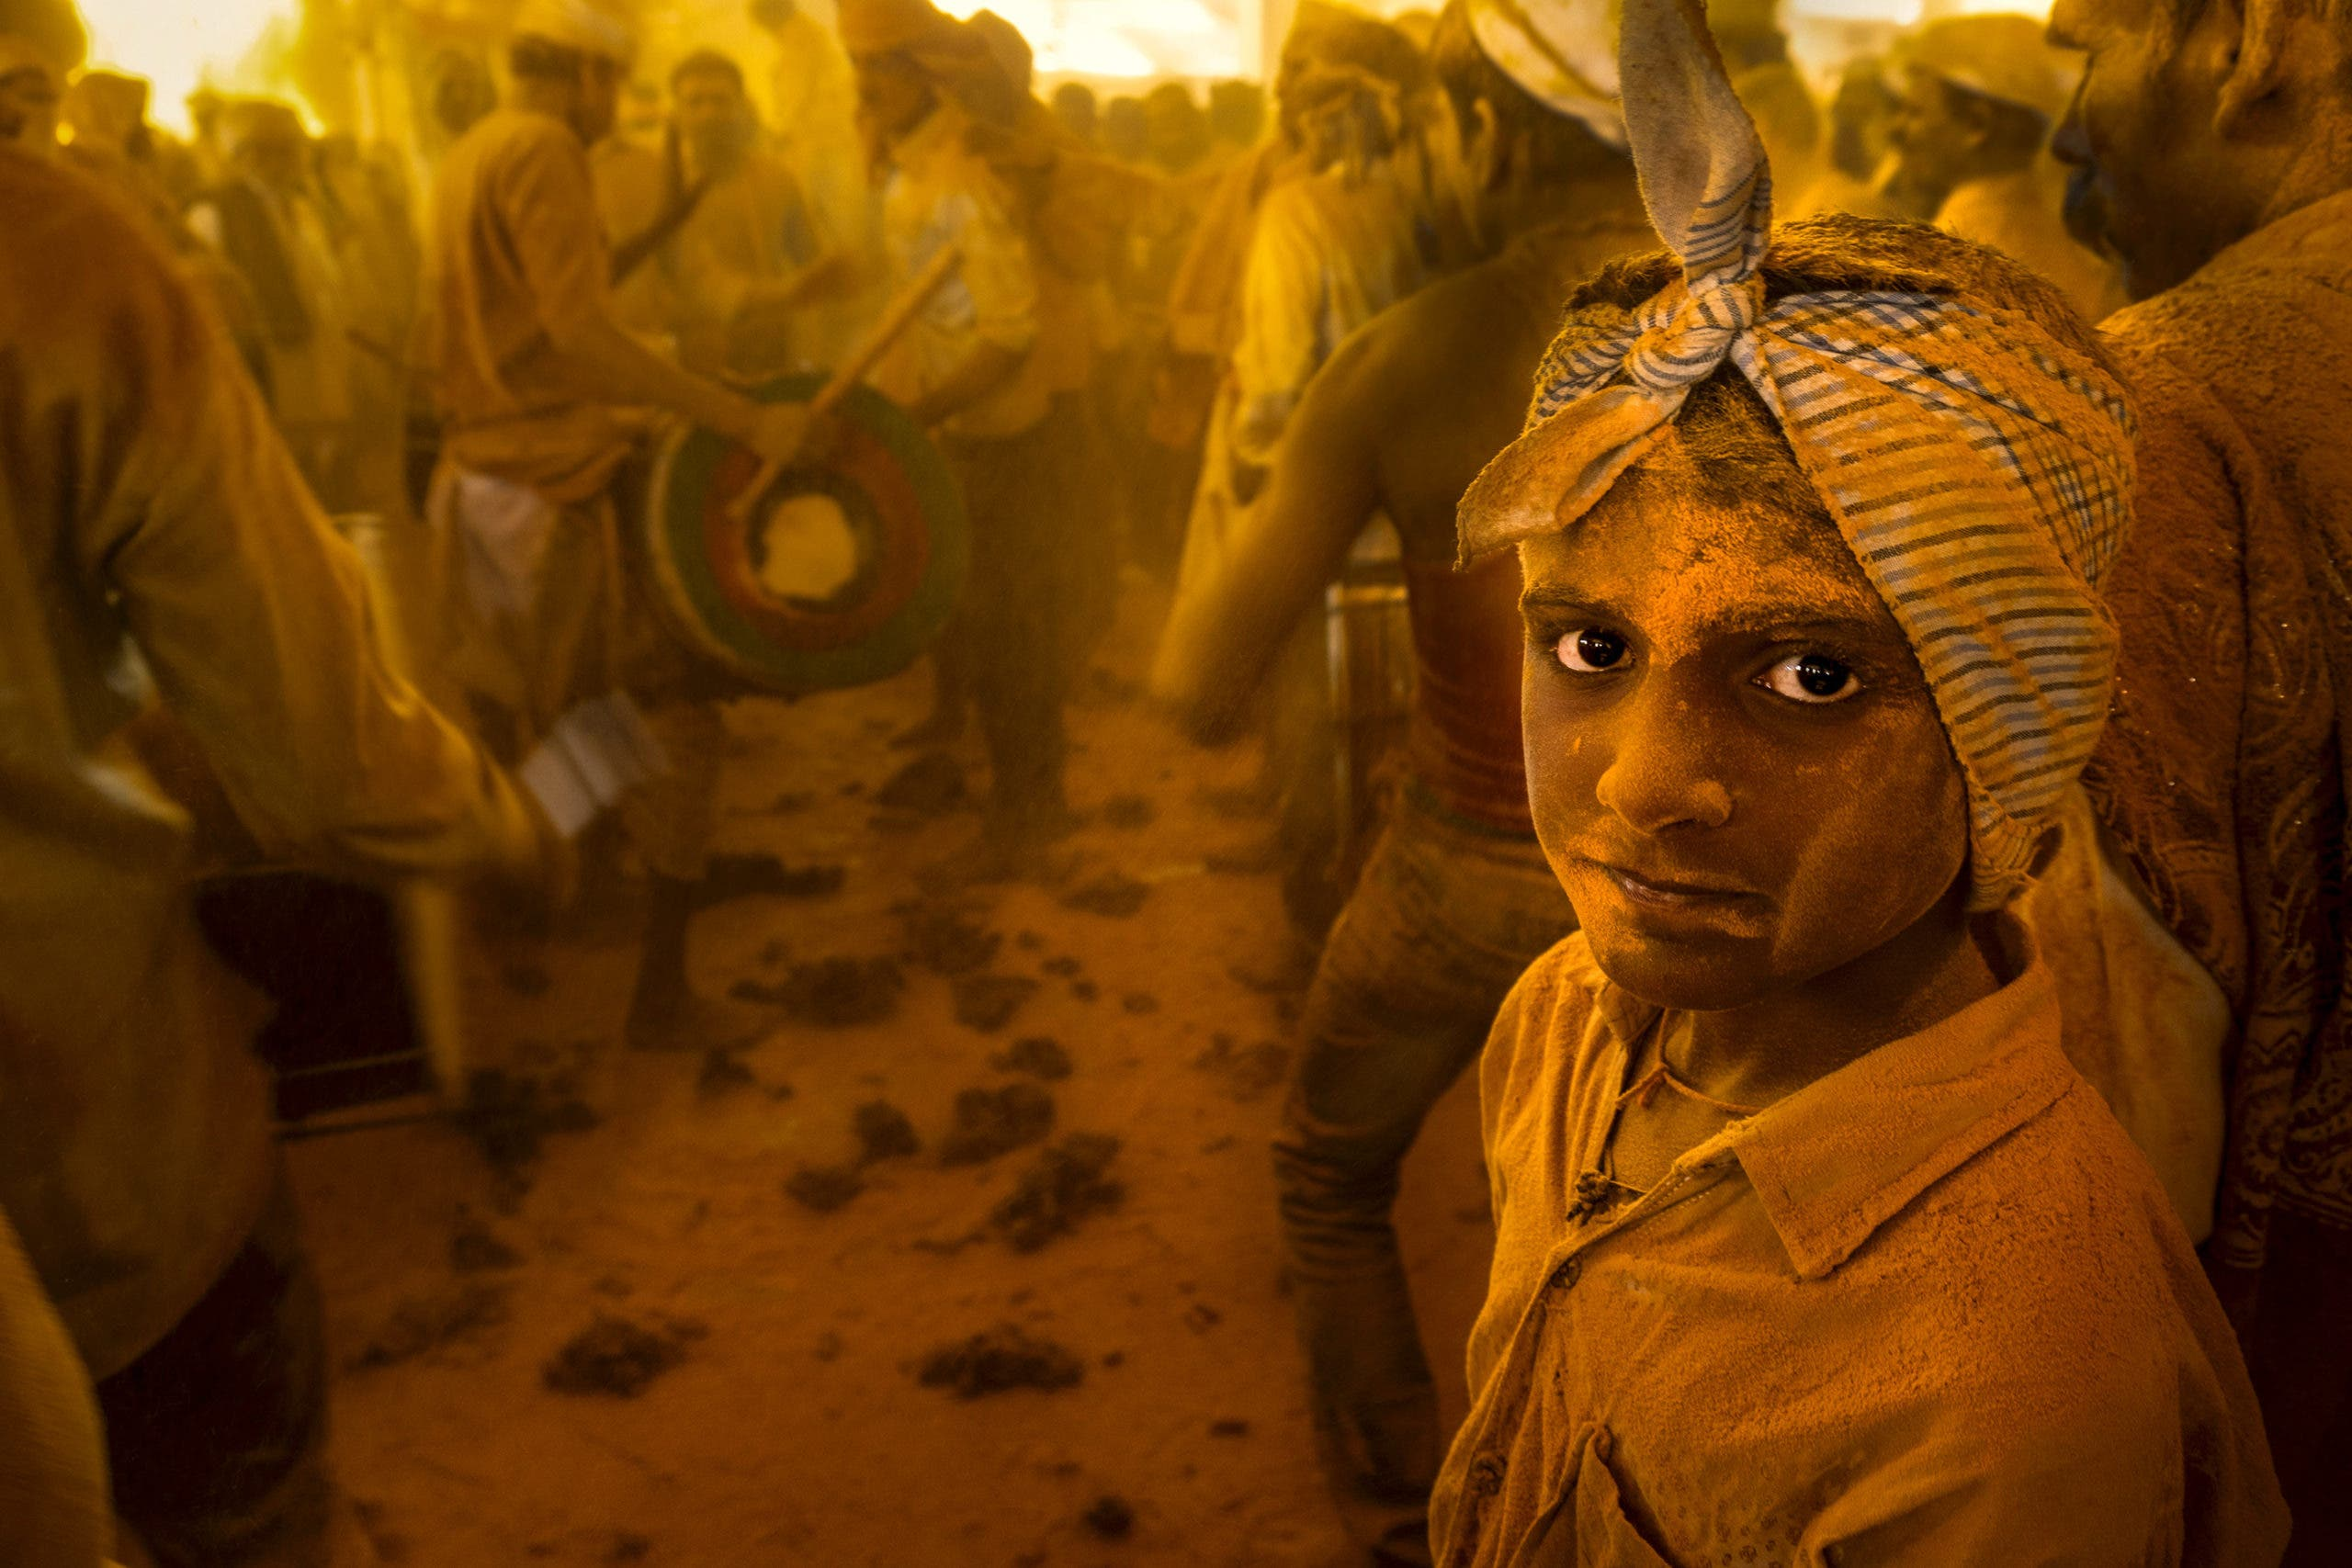 The Golden Hues of the Haldi Festival Are Perfect for Documentary Photography